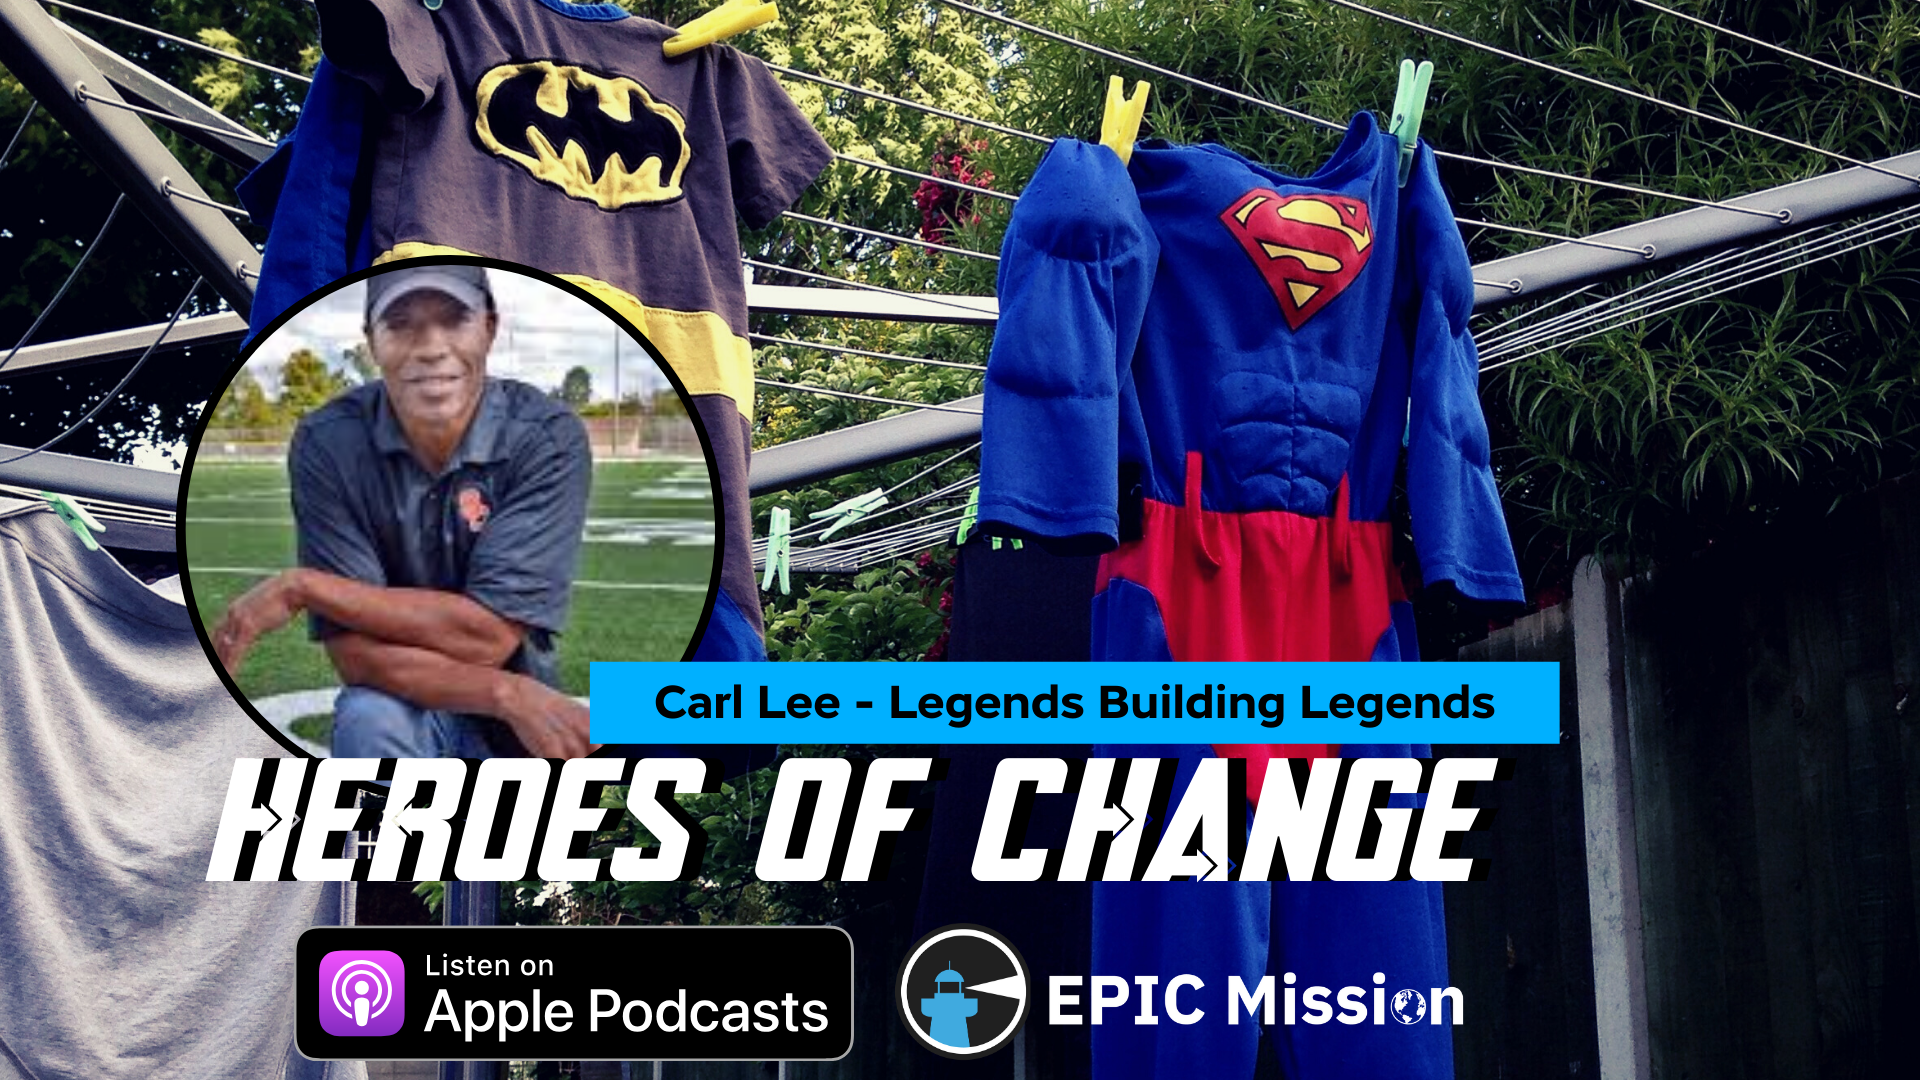 Heroes of Change: with Carl Lee of Legends Building Legends